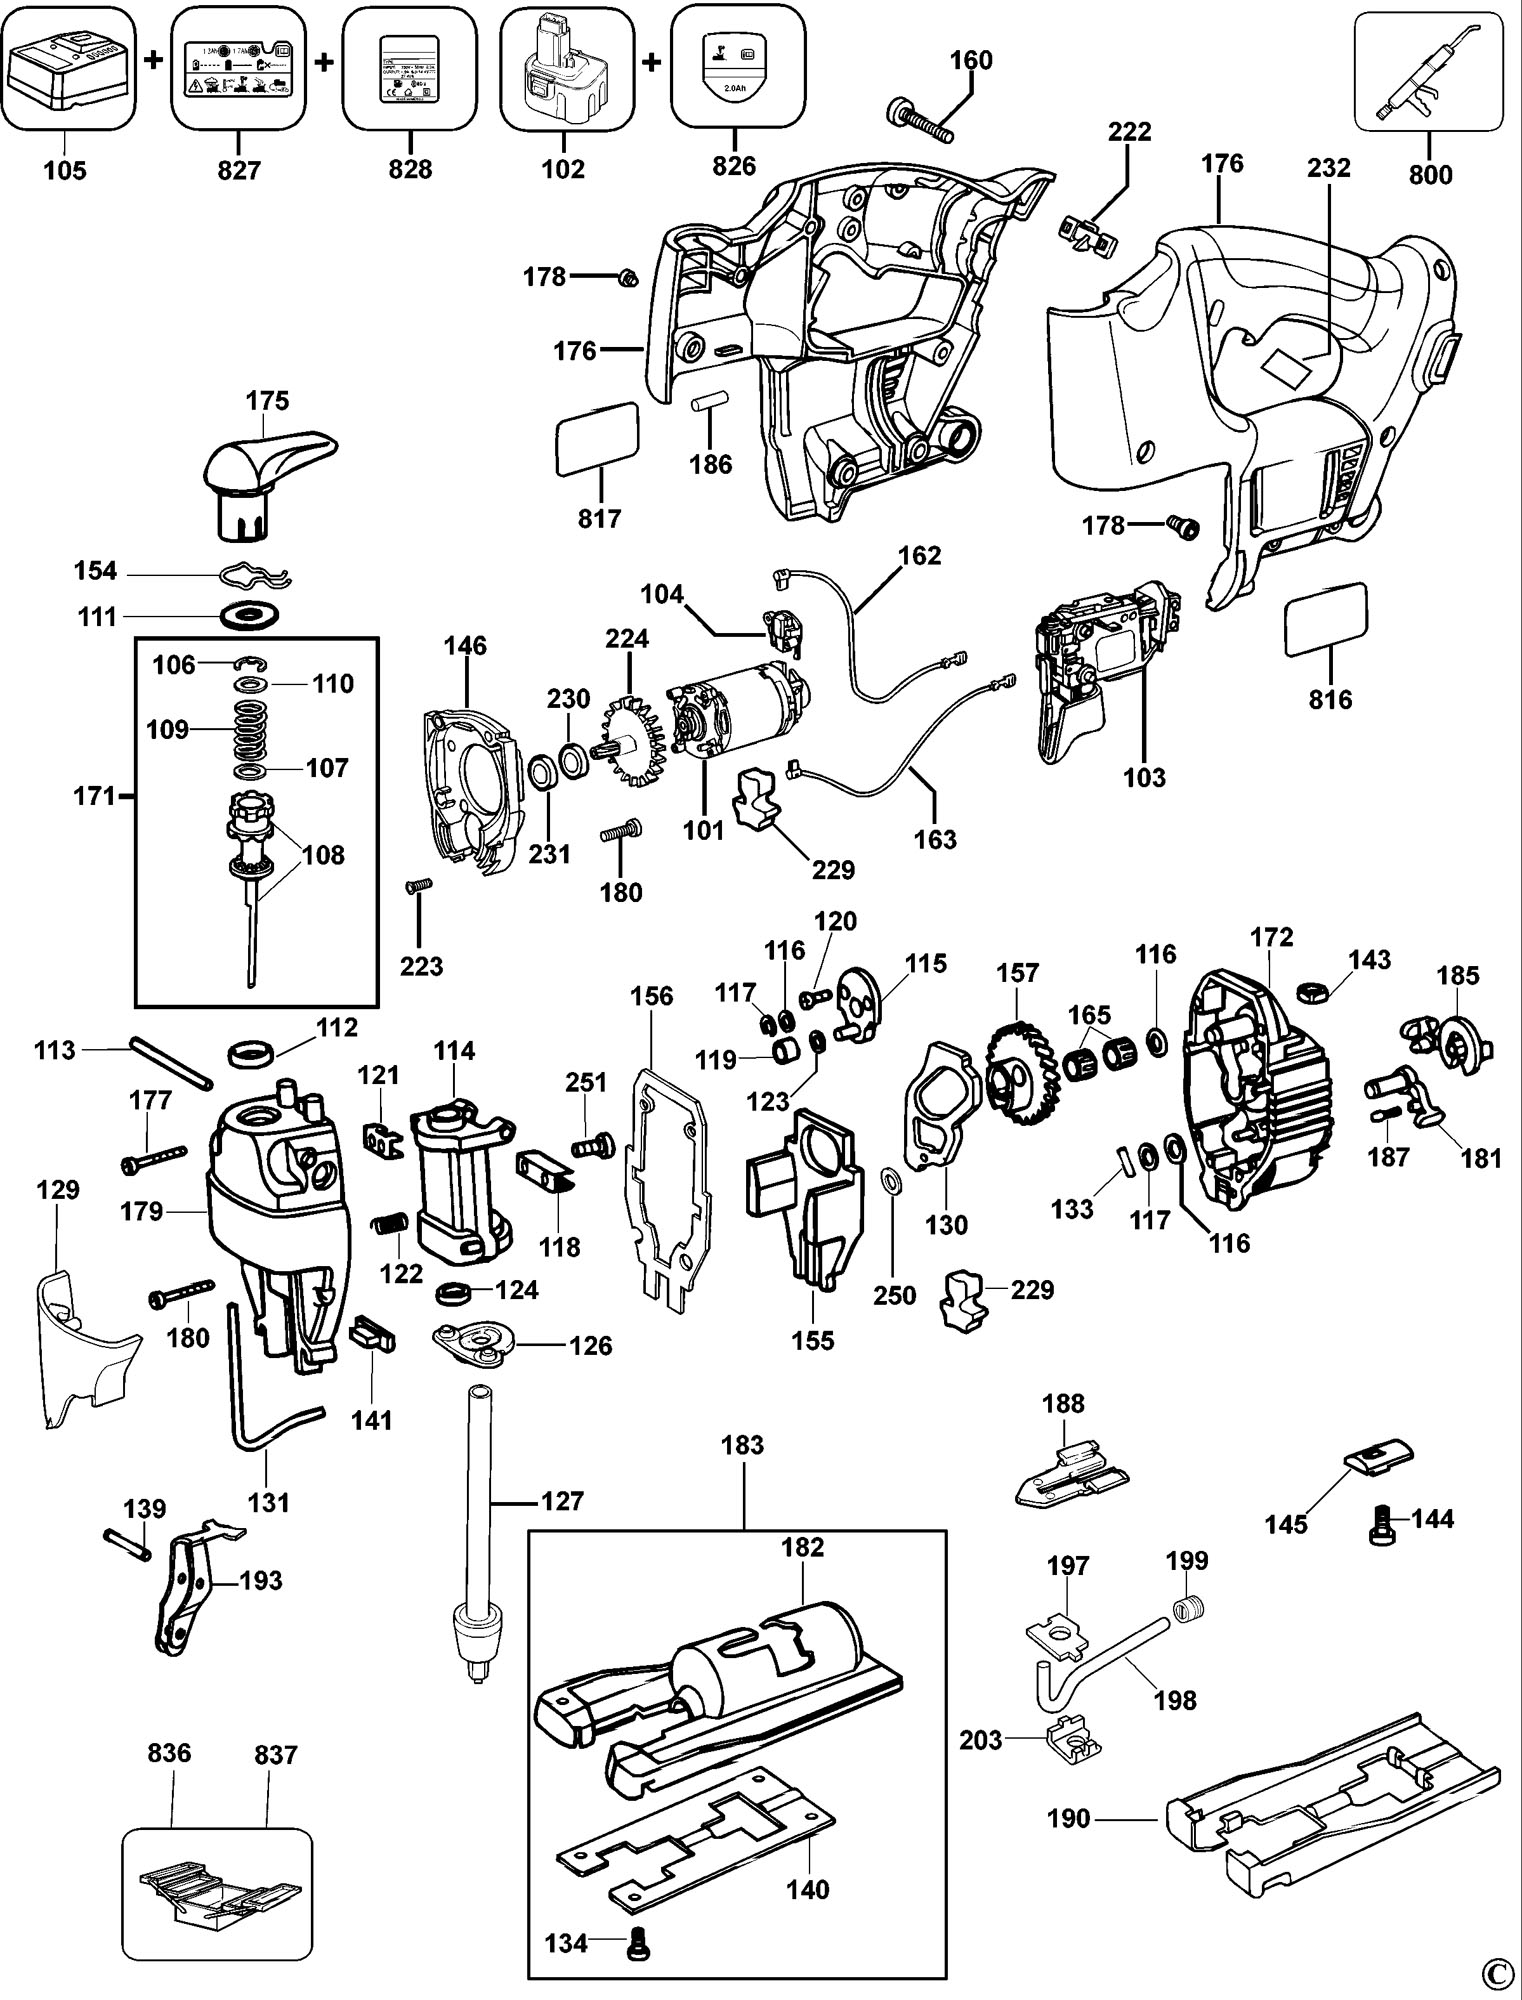 Spares for dewalt dw933 cordless jigsaw type 1 sparedw933 click for bigger diagram greentooth Image collections